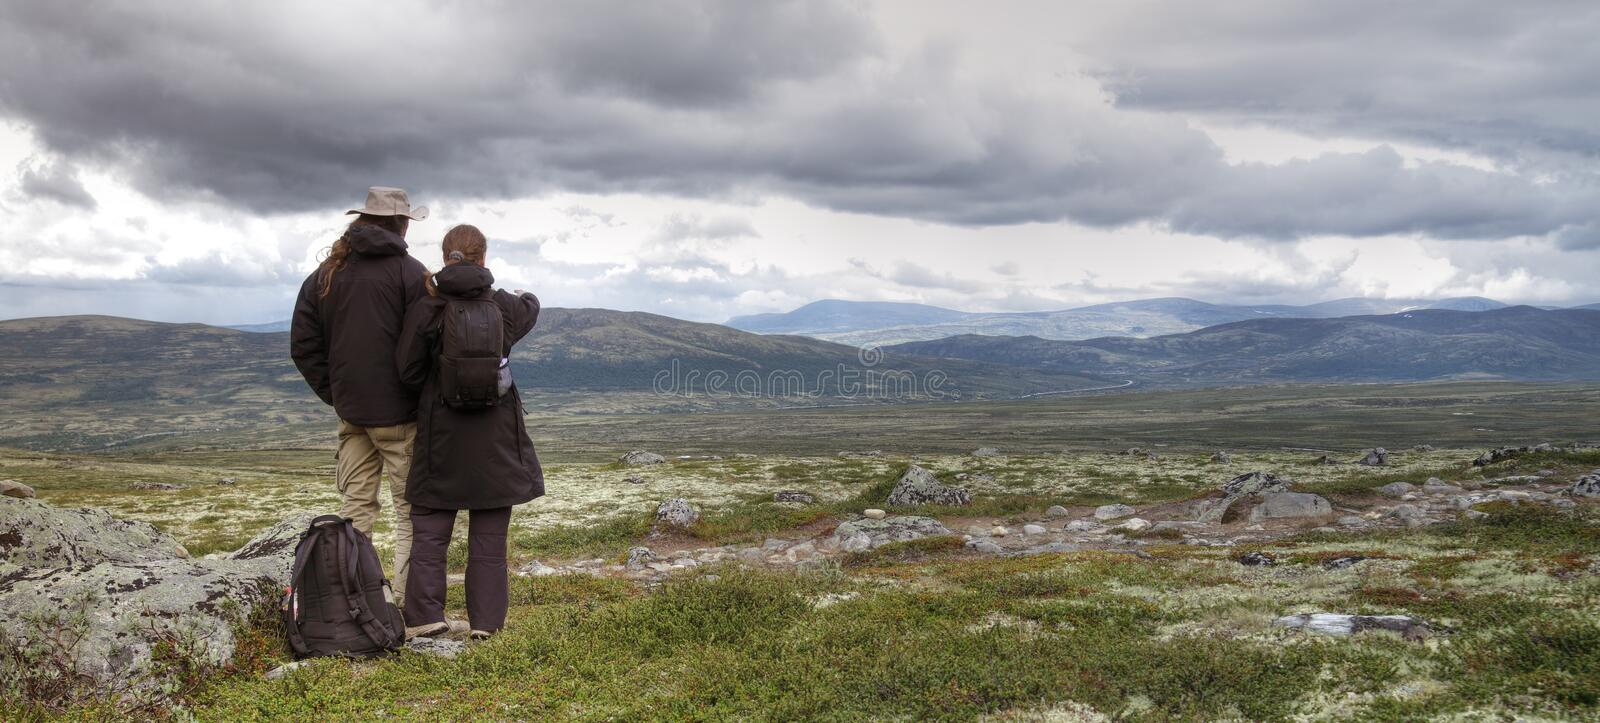 Download Couple hiking in Norway stock image. Image of background - 20935255